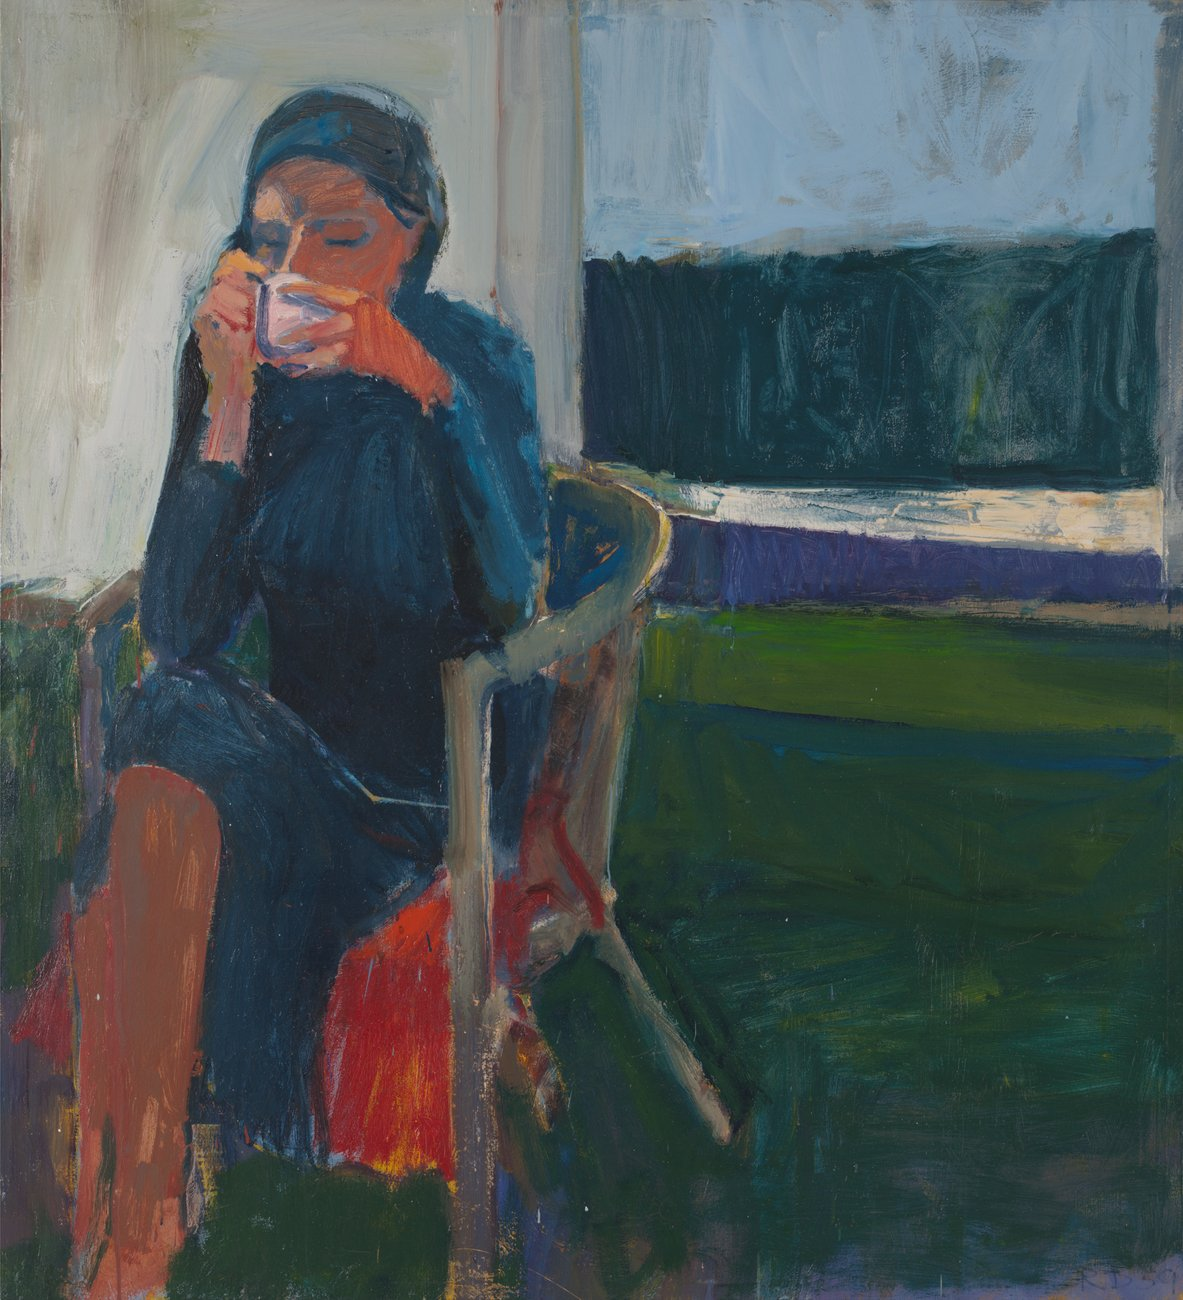 Seated woman drinking from a cup